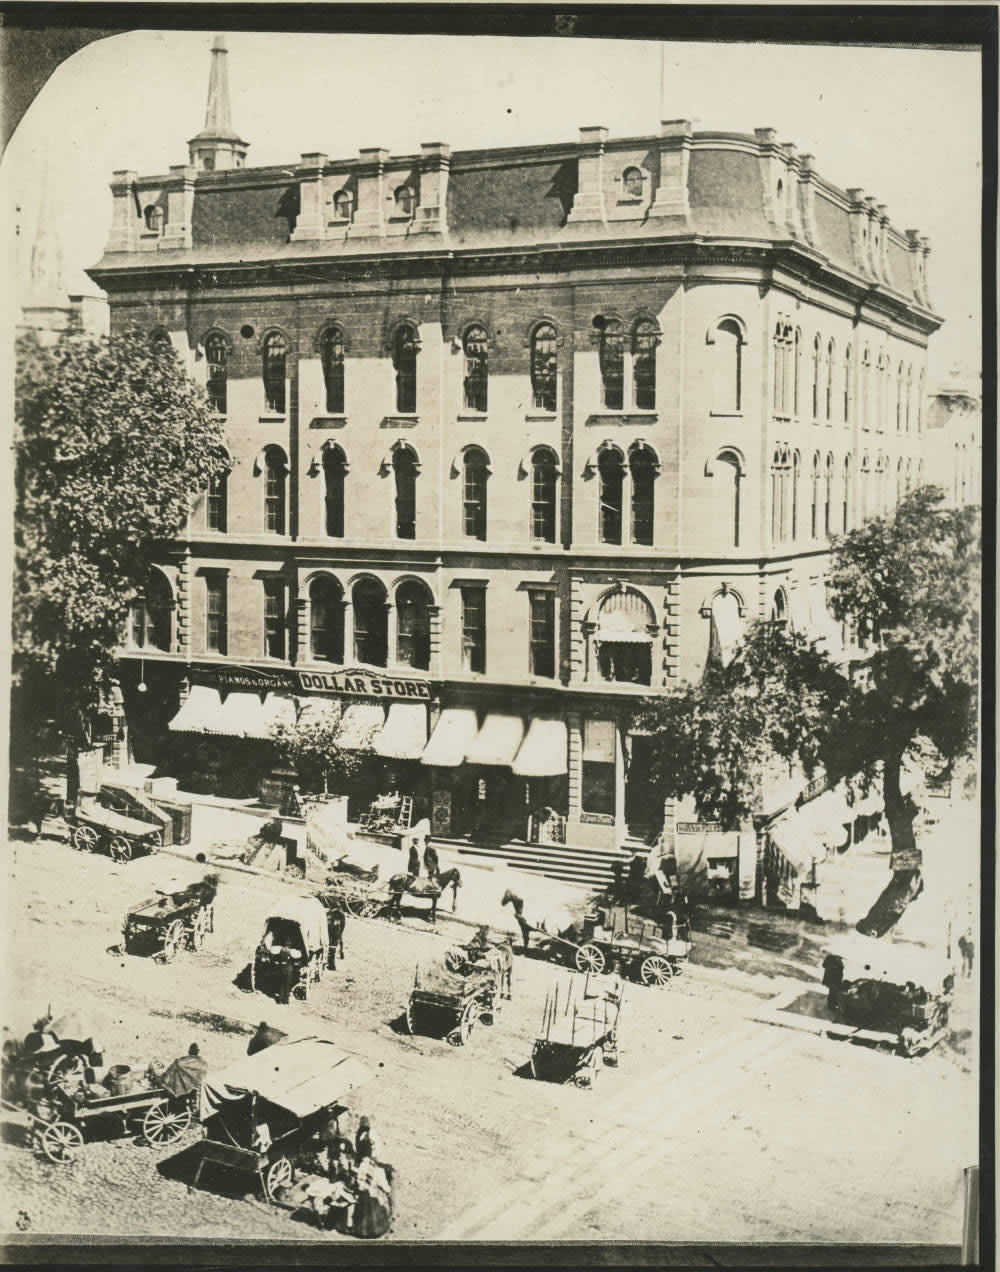 State and Pearl in downtown Albany Tweddle Hall 1800s